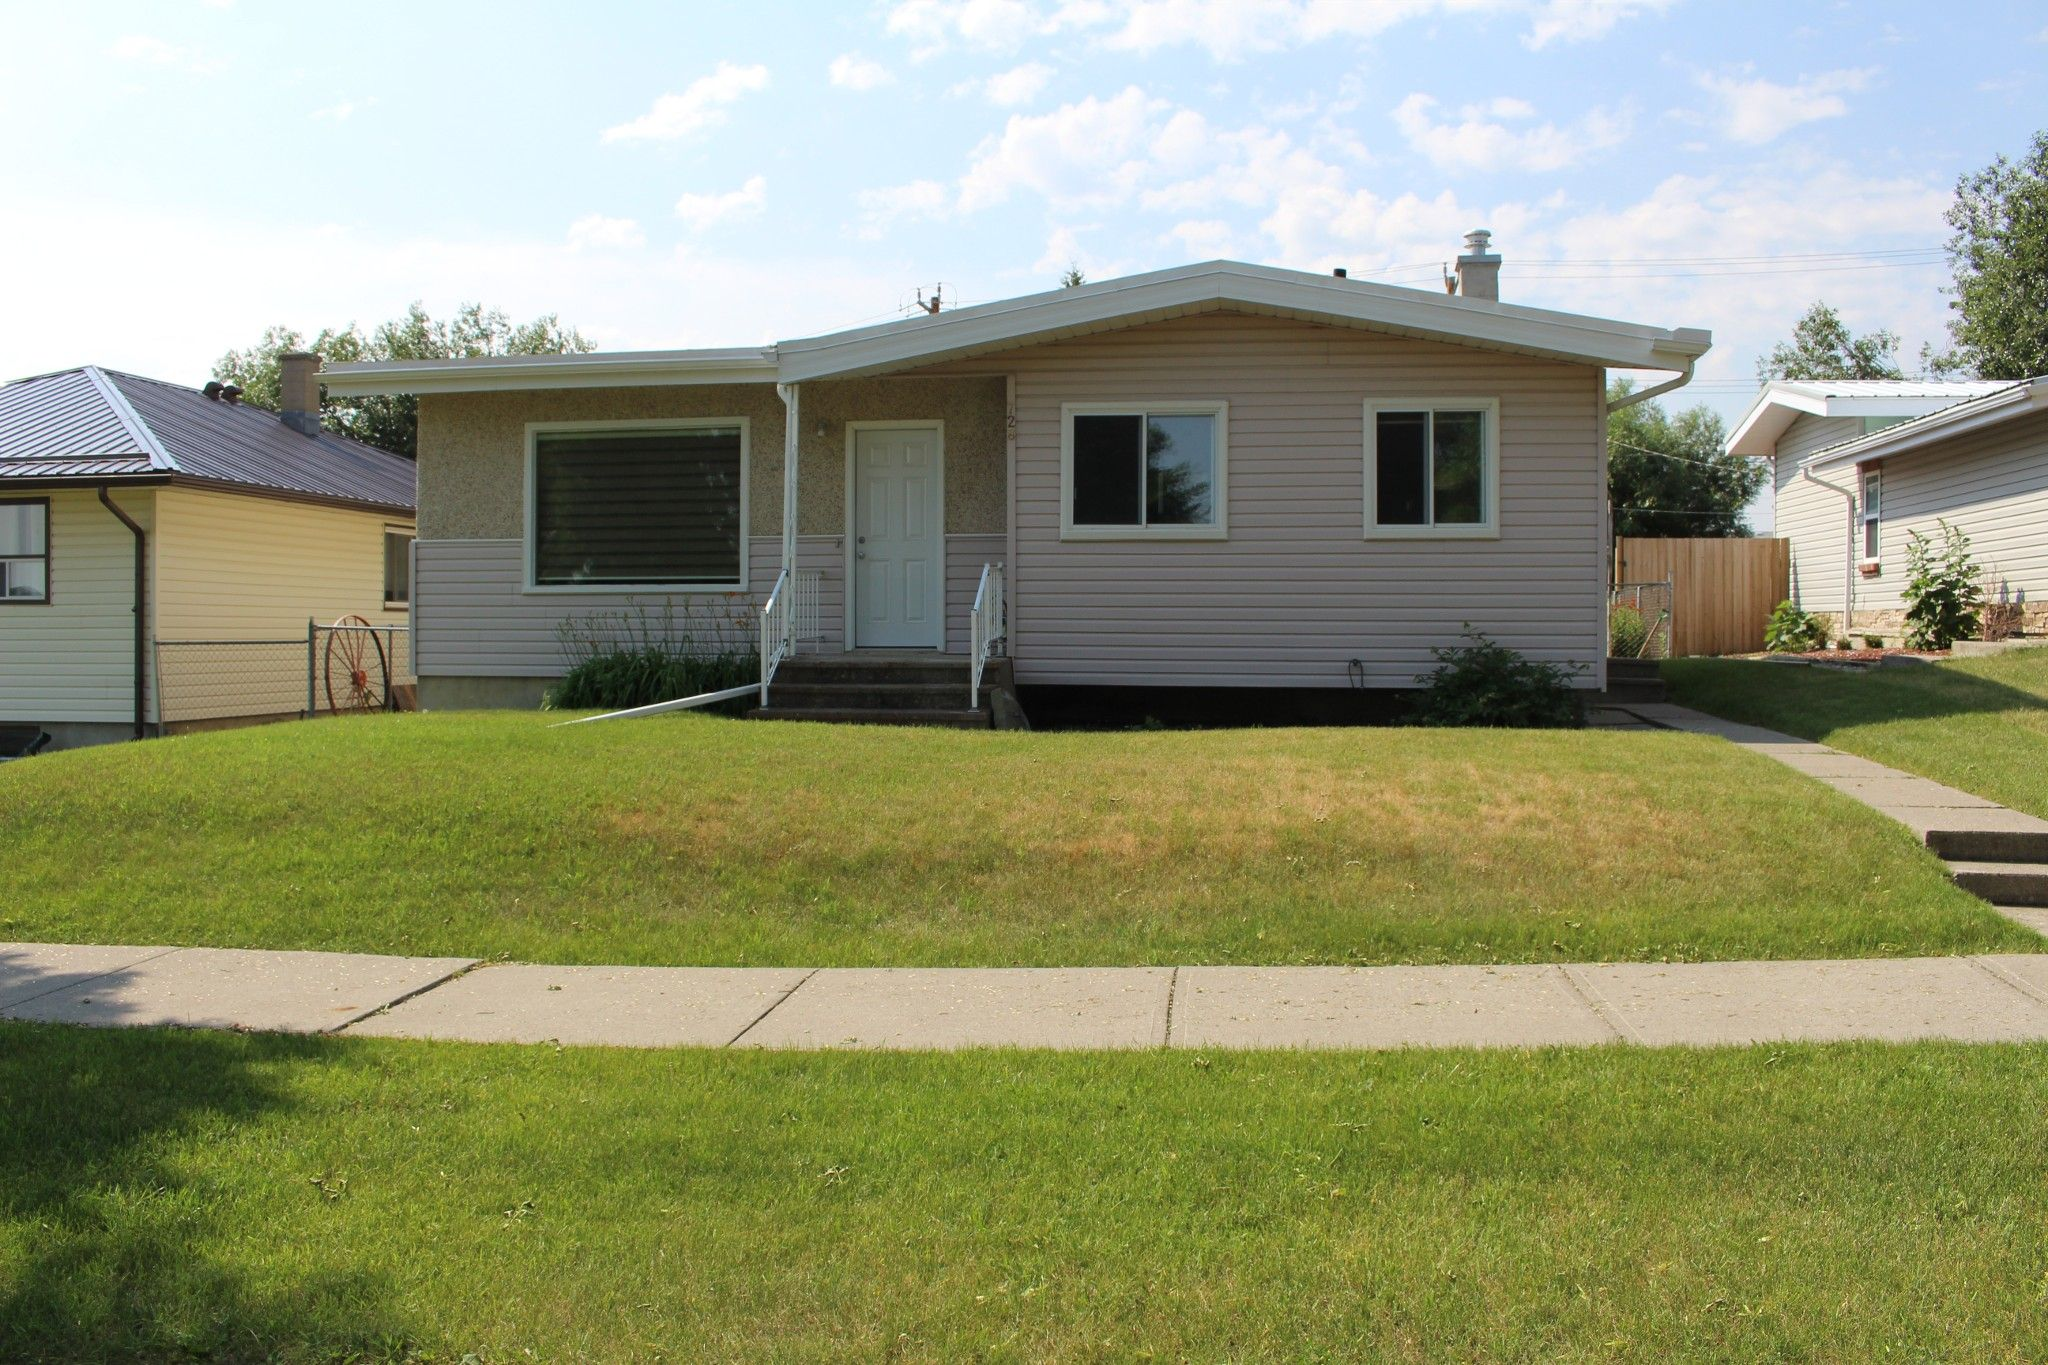 Main Photo: 728 McDougall Street in Pincher Creek: House for sale